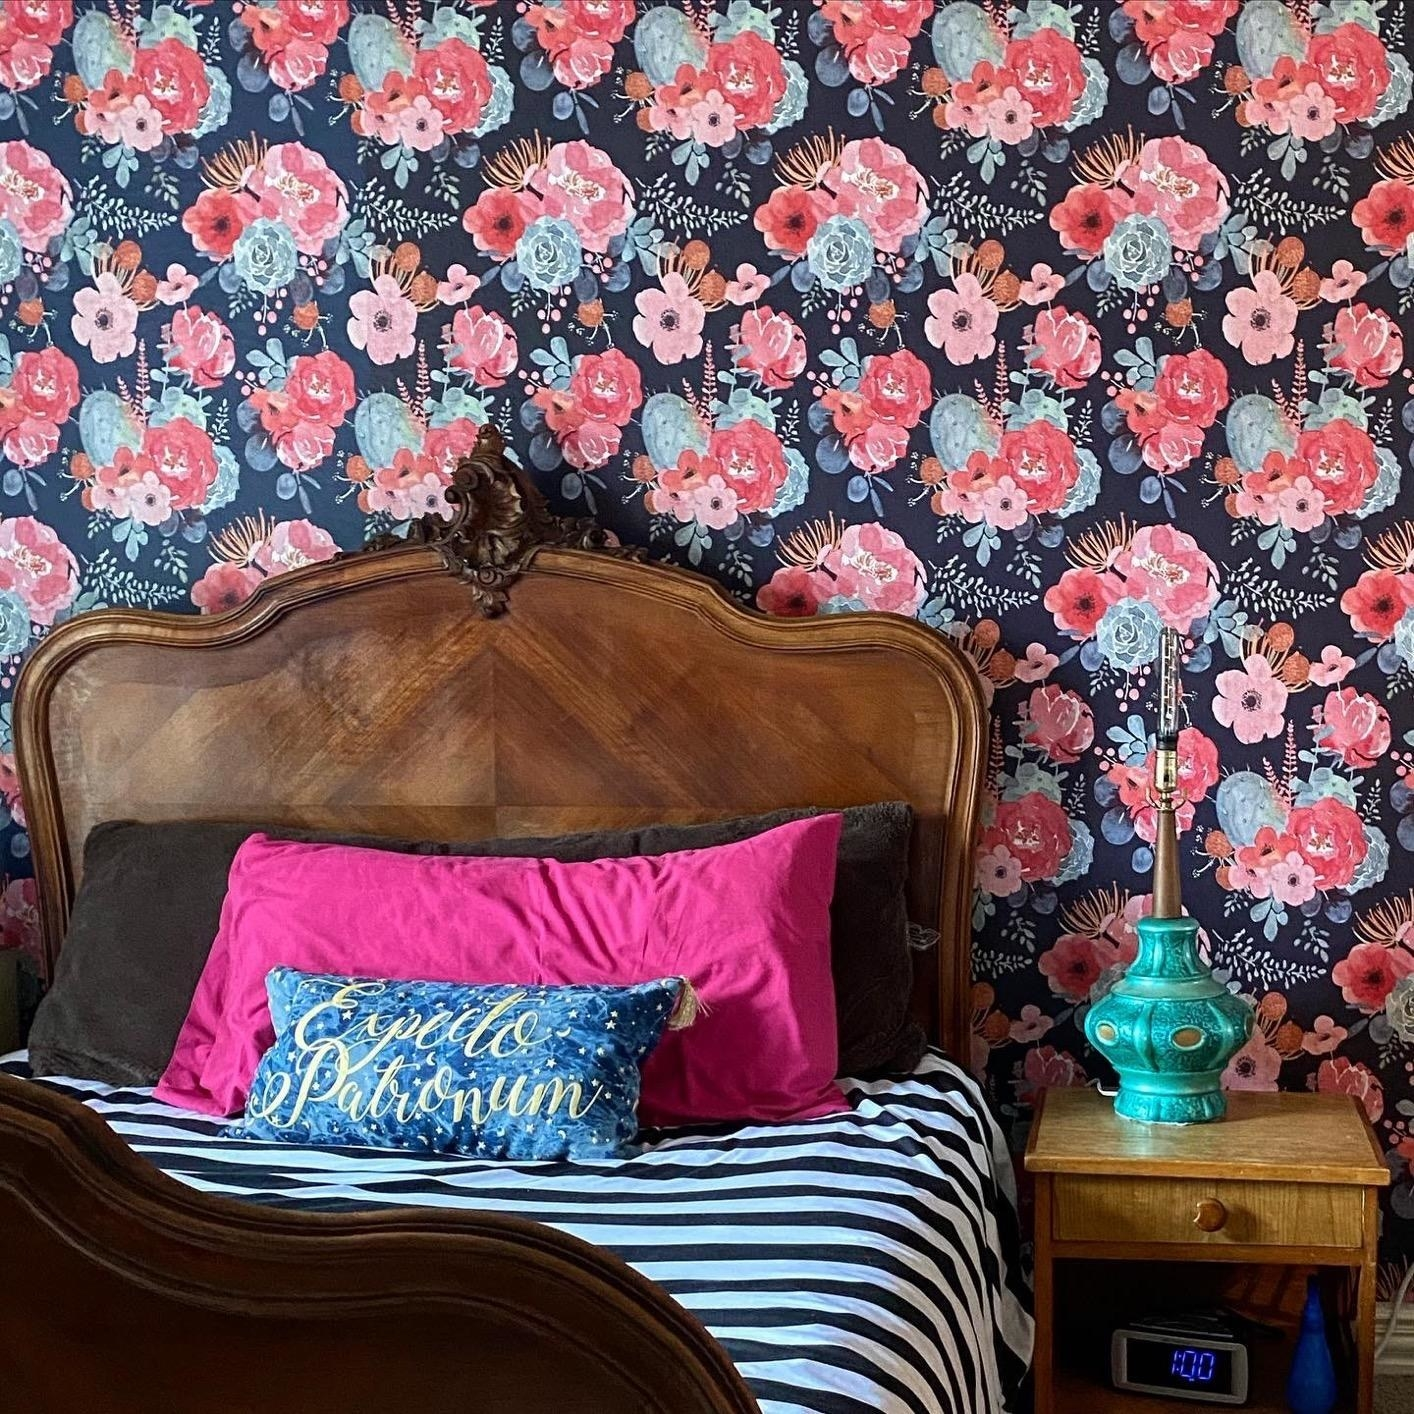 reviewer image of the floral peel and stick wallpaper on a bedroom wall